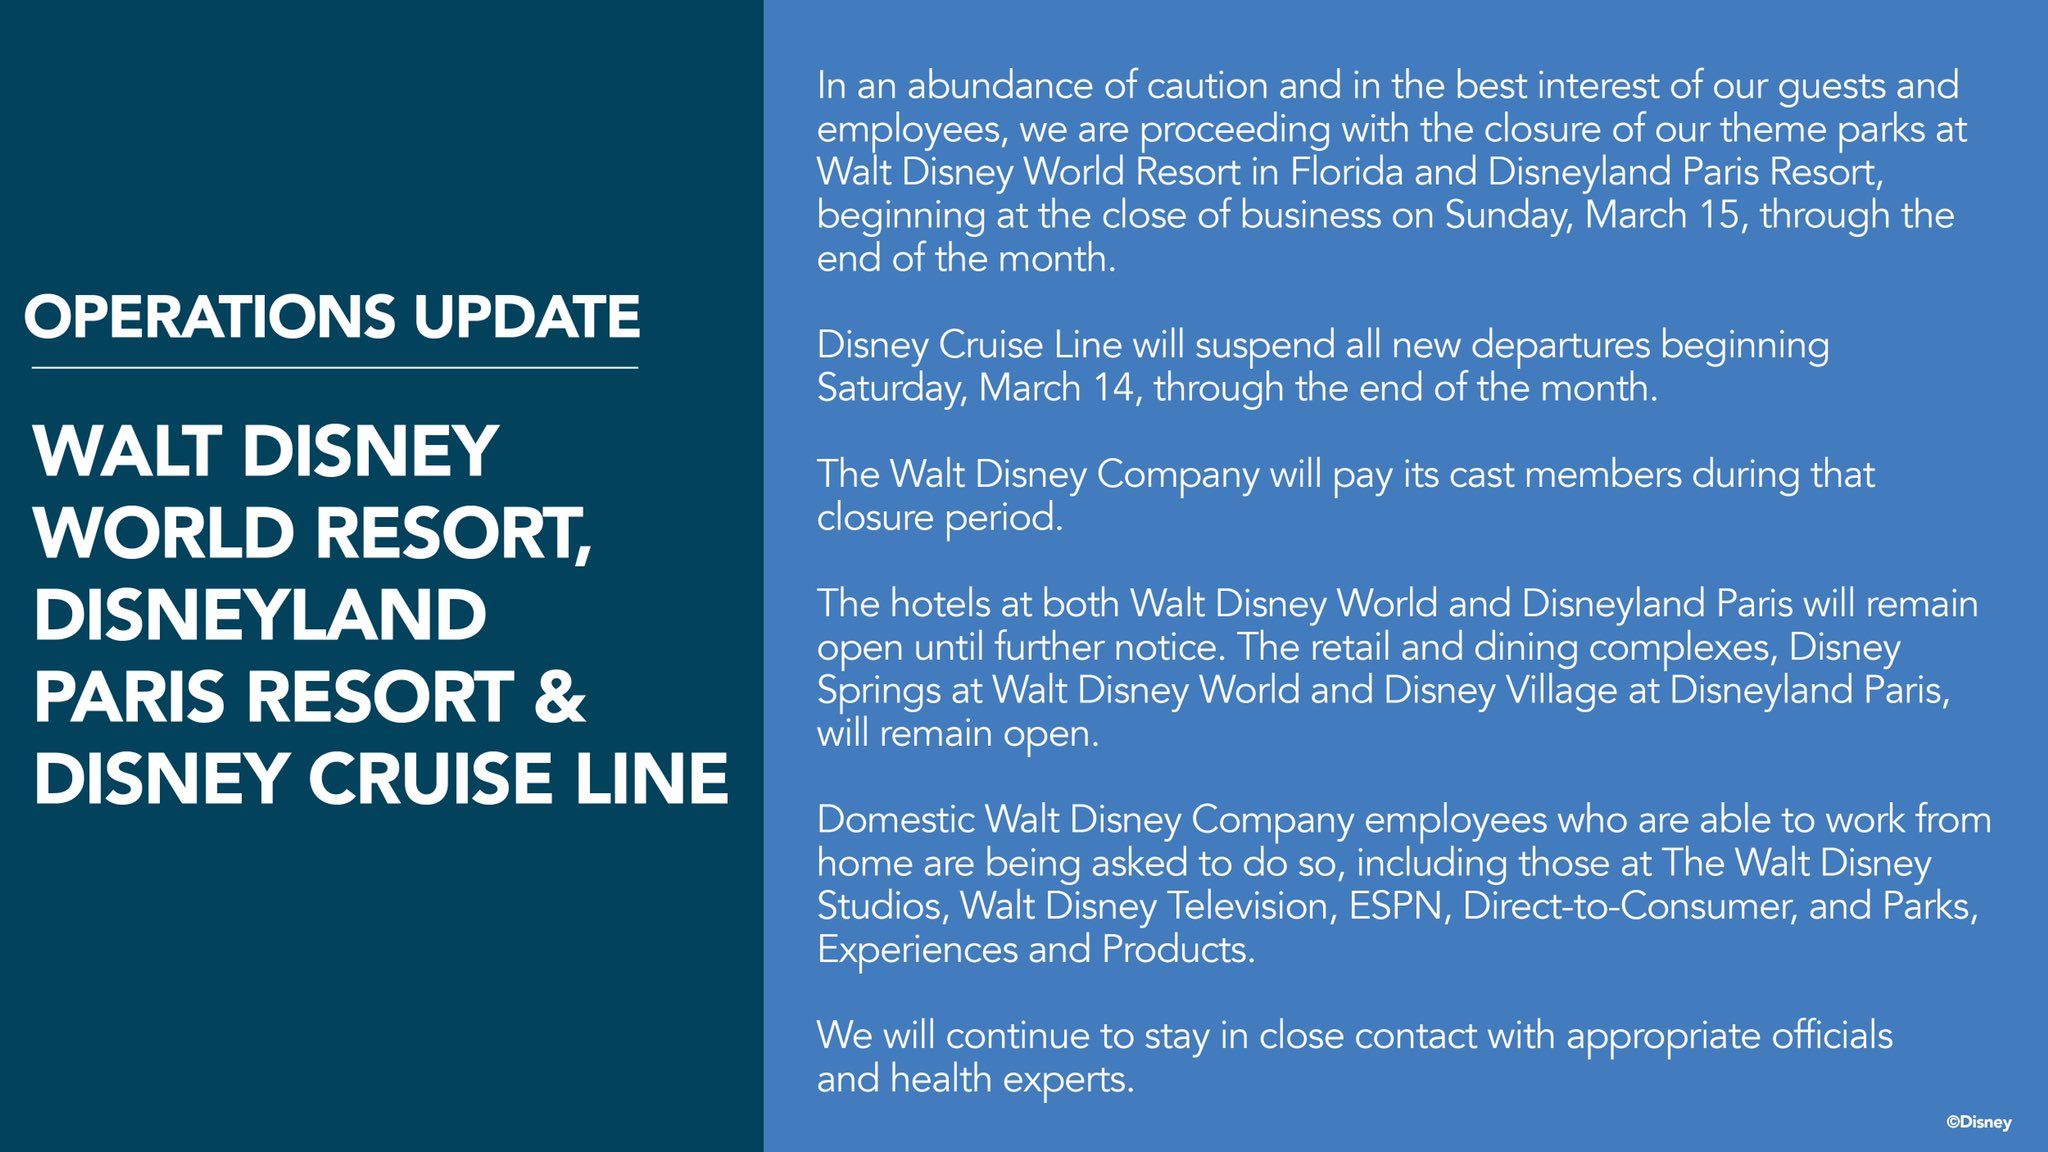 Official Disney Statement on Closure